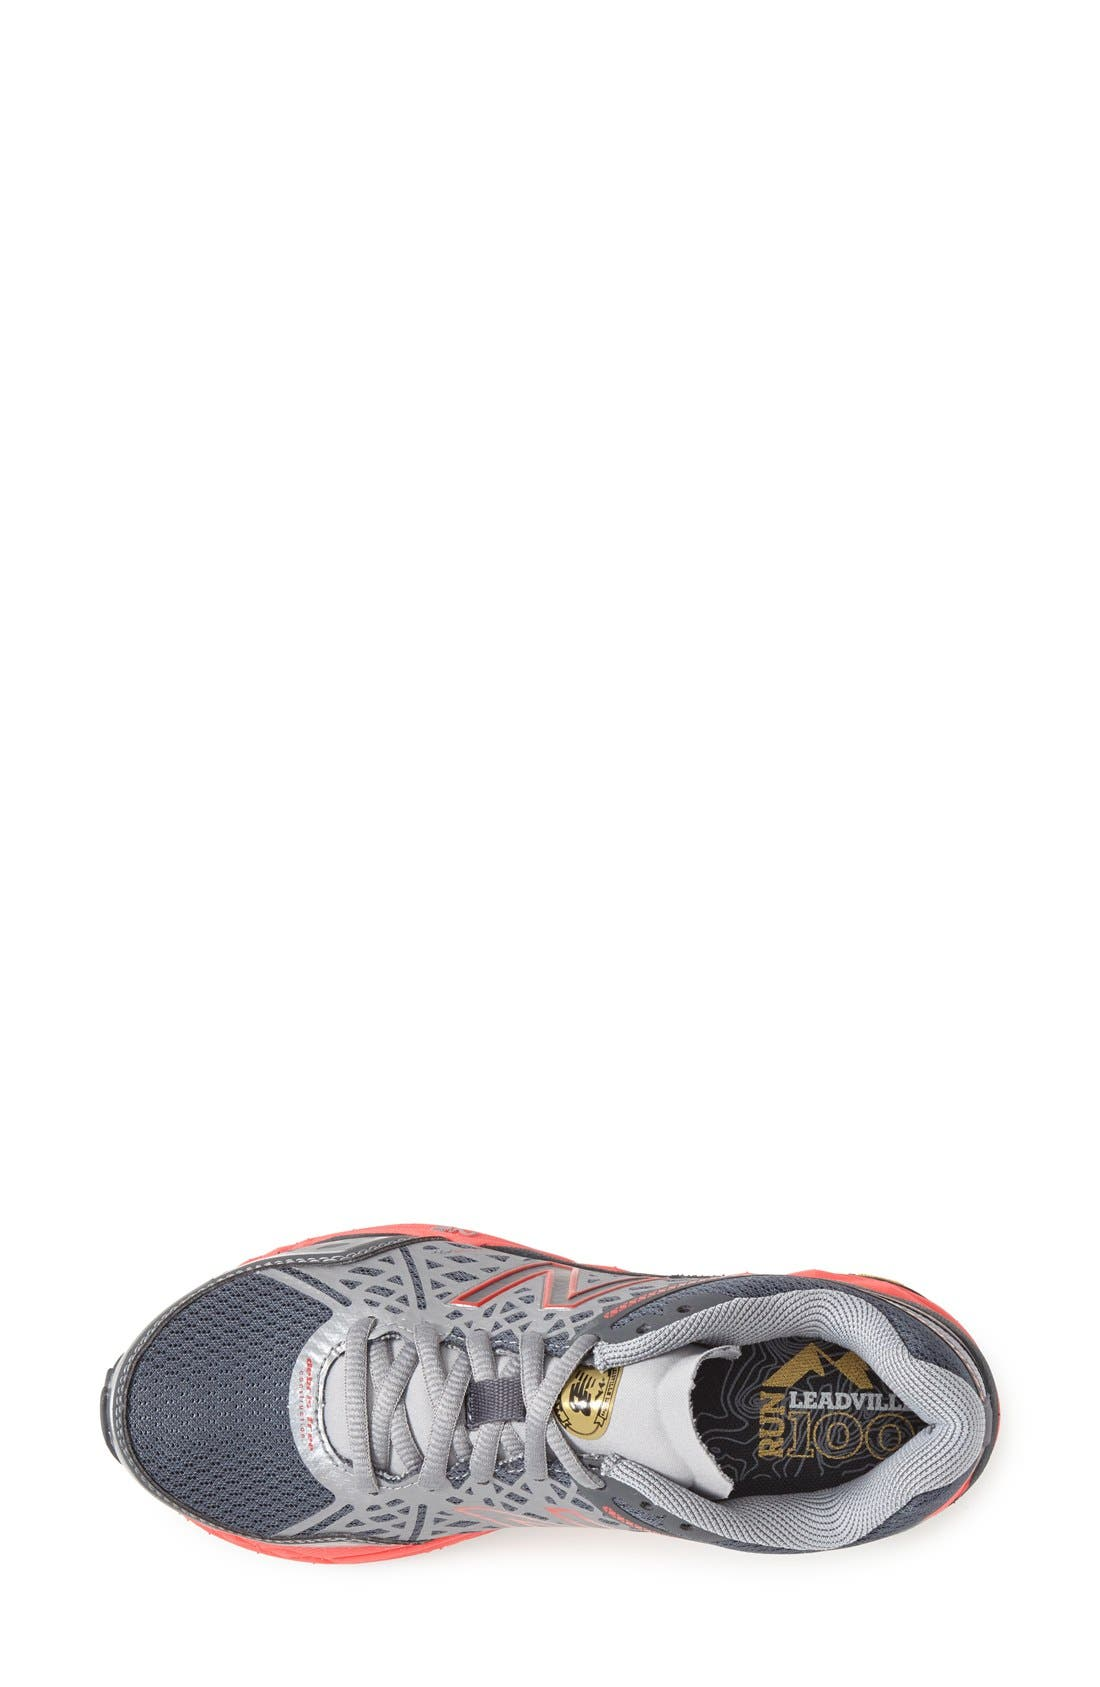 Alternate Image 3  - New Balance '1210' Trail Running Shoe (Women)